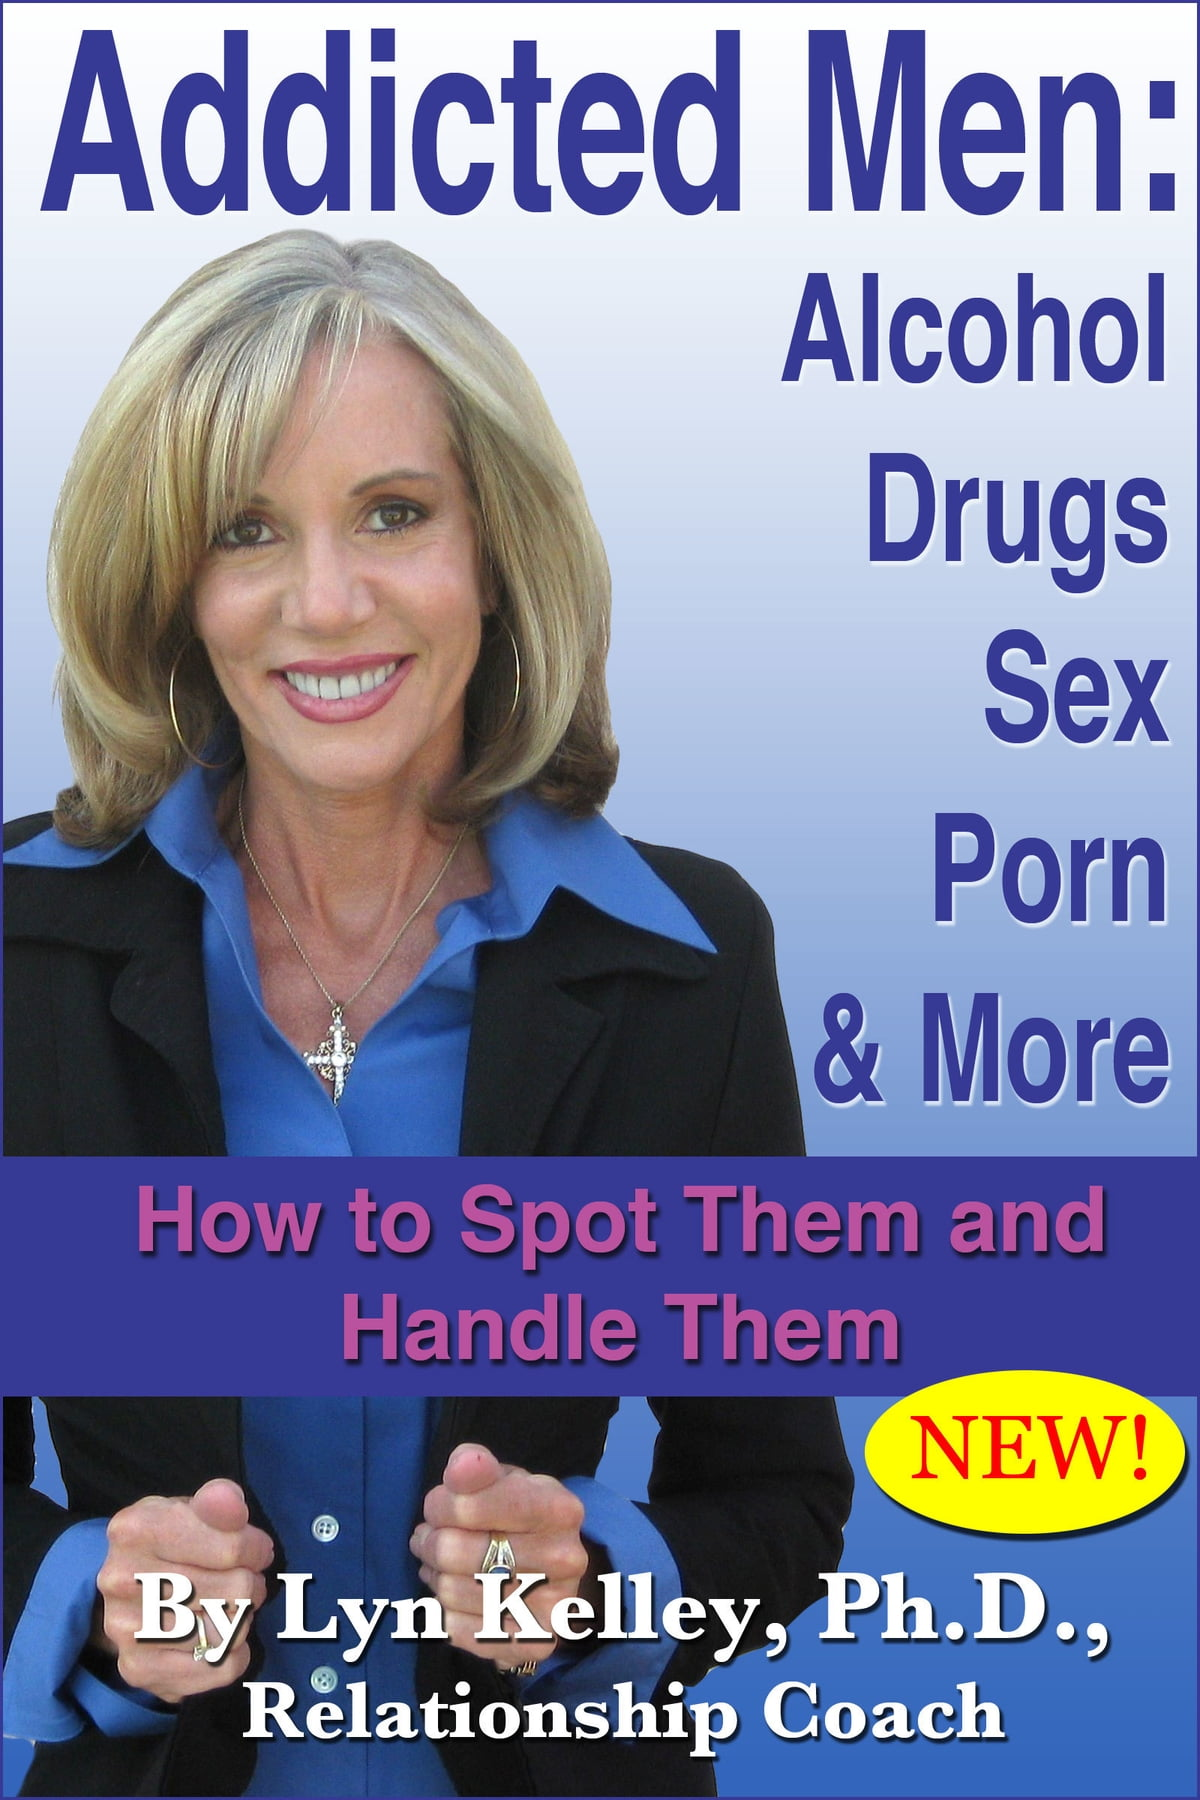 Addicted Men: Alcohol, Drugs, Sex, Porn and More -- How to Spot Them and  Handle Them eBook de Lyn Kelley - 9781458056849 | Rakuten Kobo